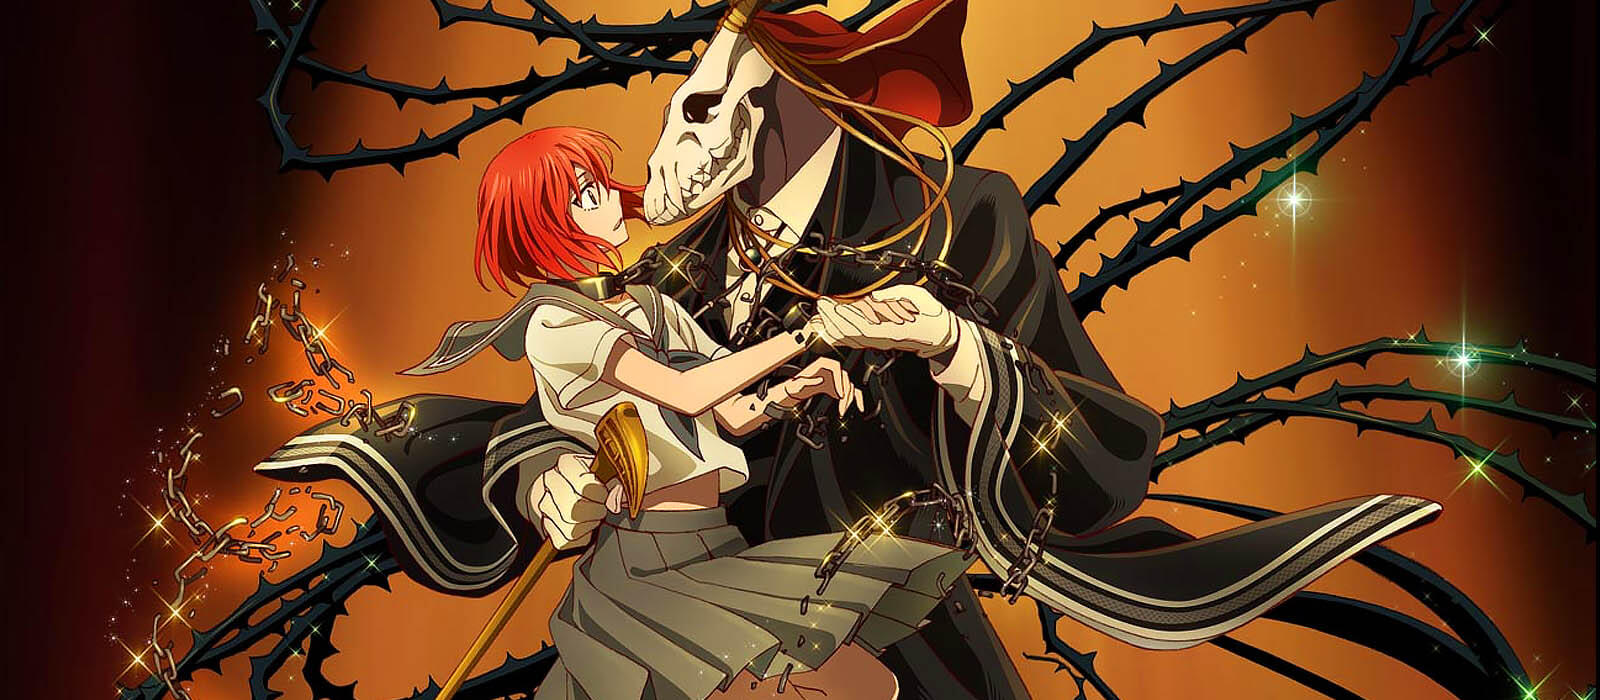 Atsumi Tanezaki - Chise & Elias from The Ancient Magus' Bride